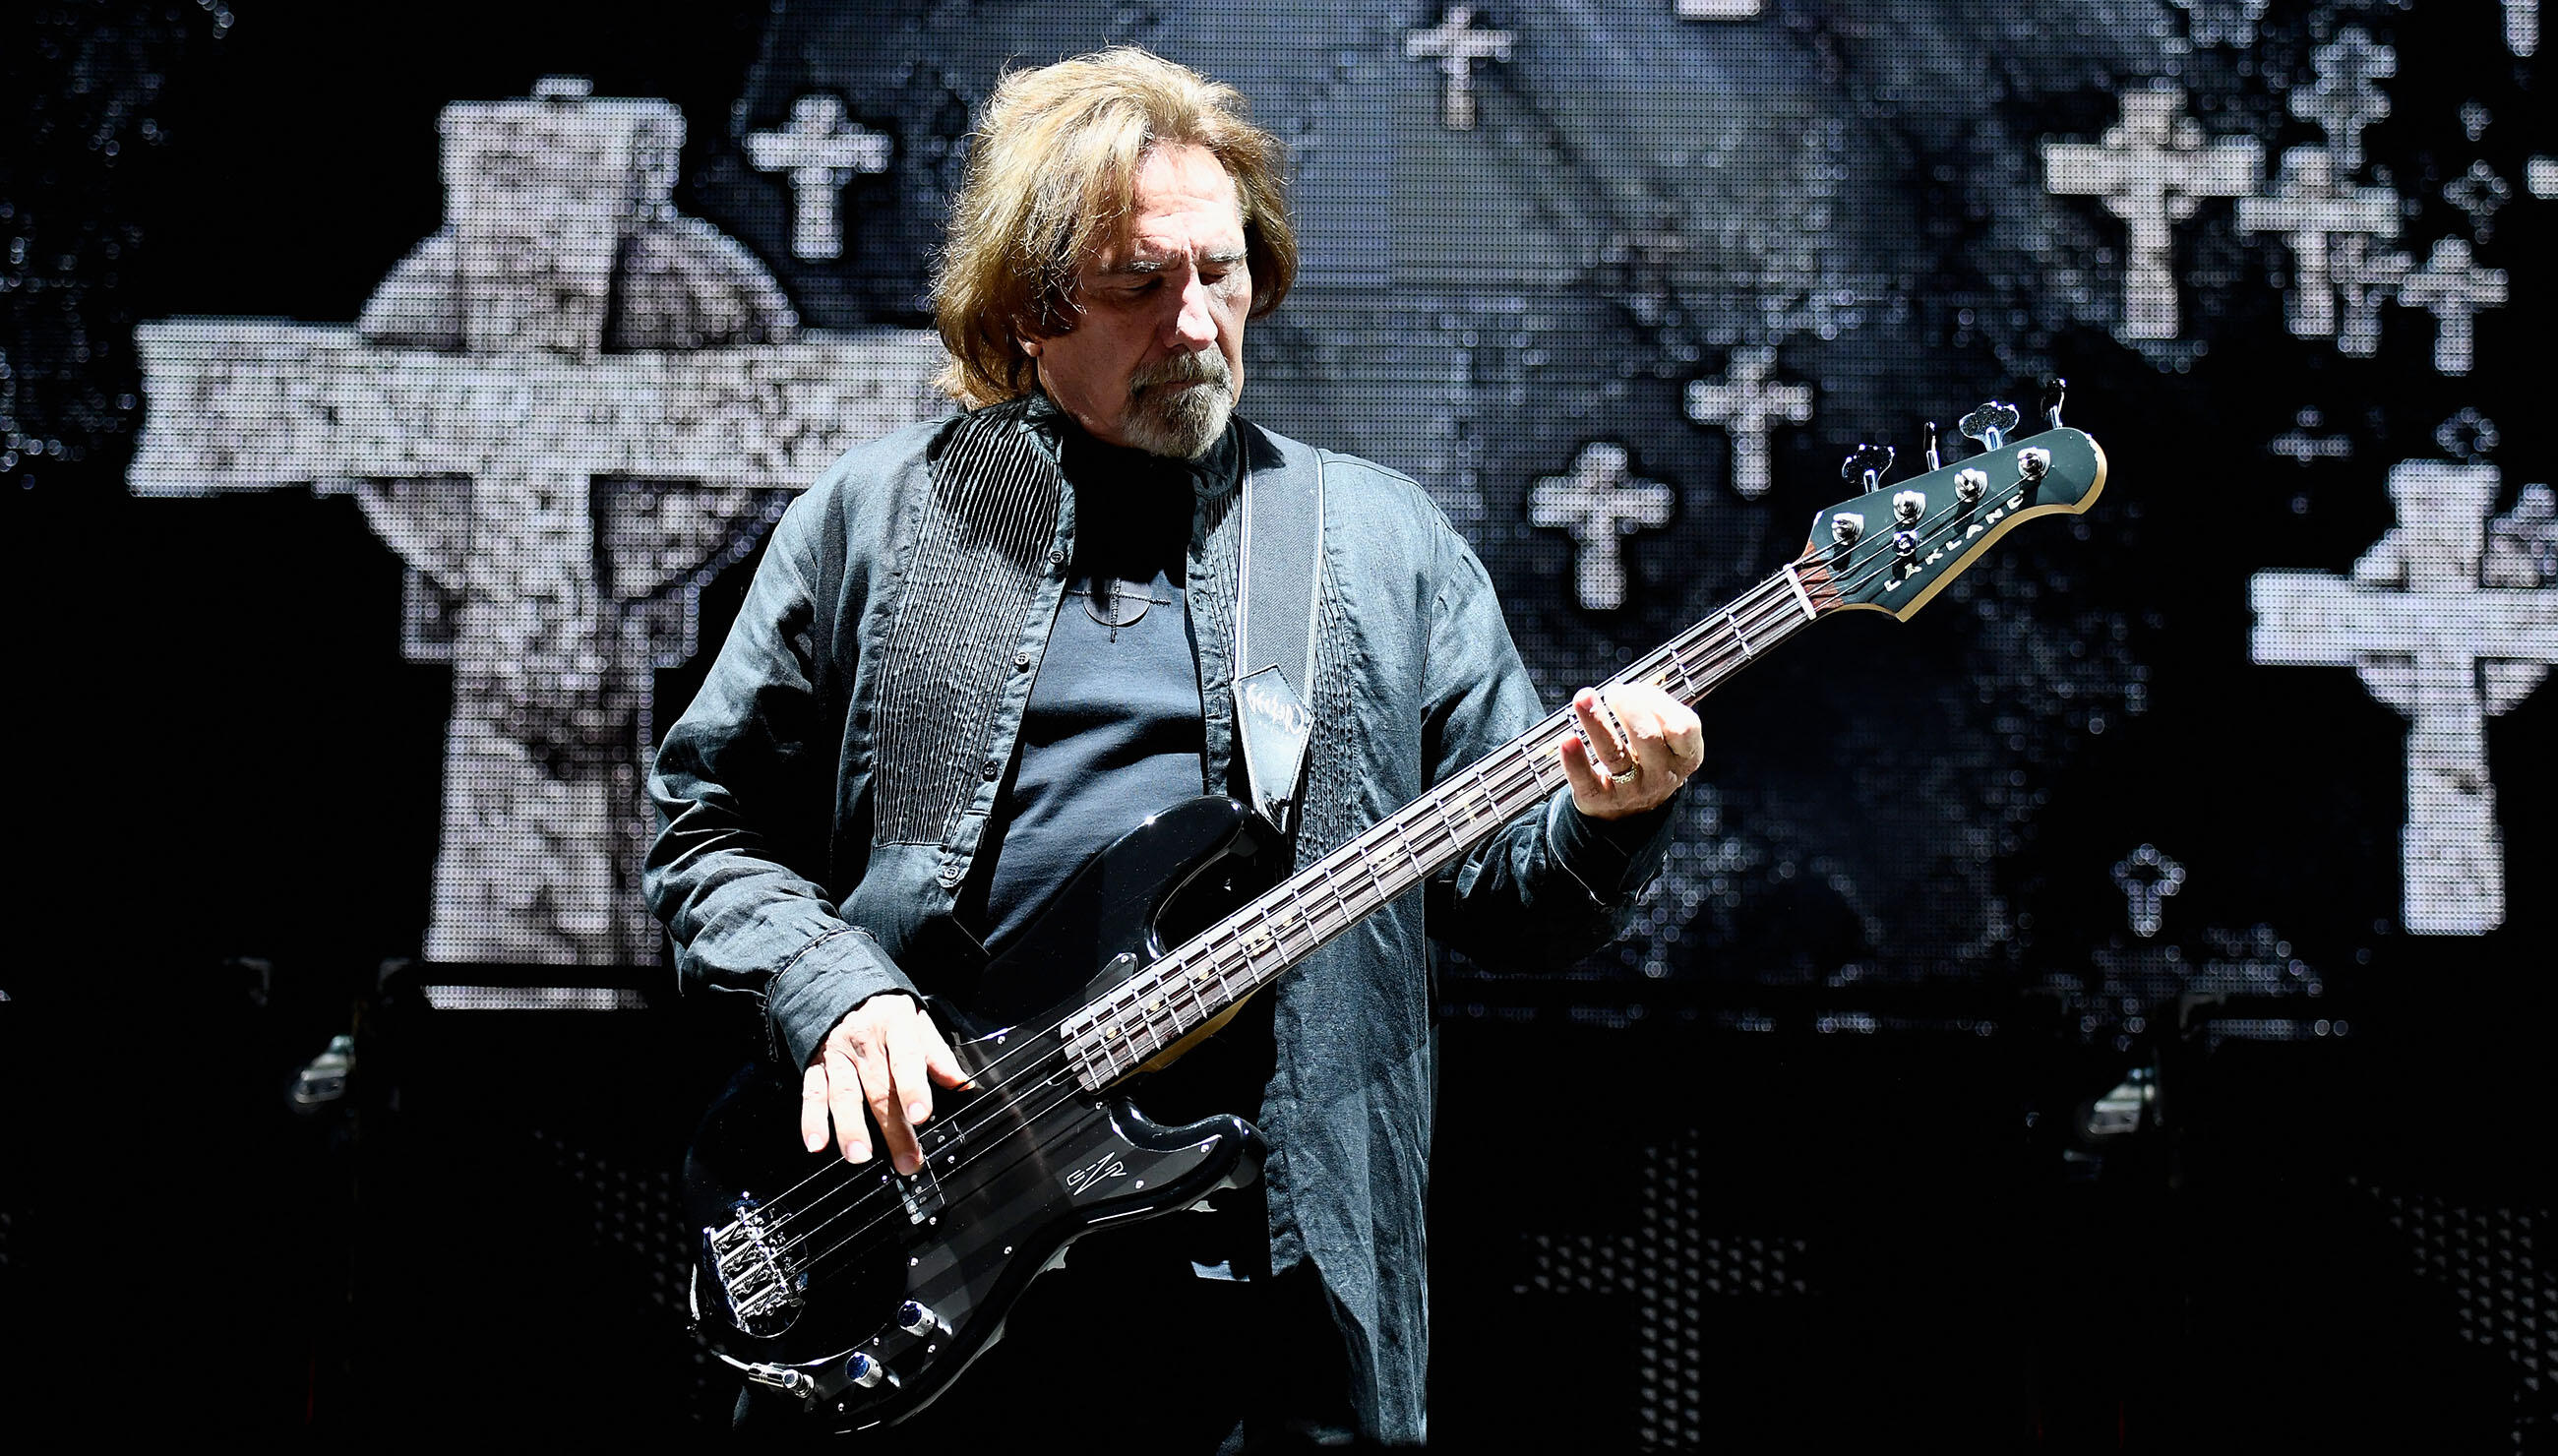 Geezer Butler Confirms He Played On Unearthed Dio Black Sabbath Song